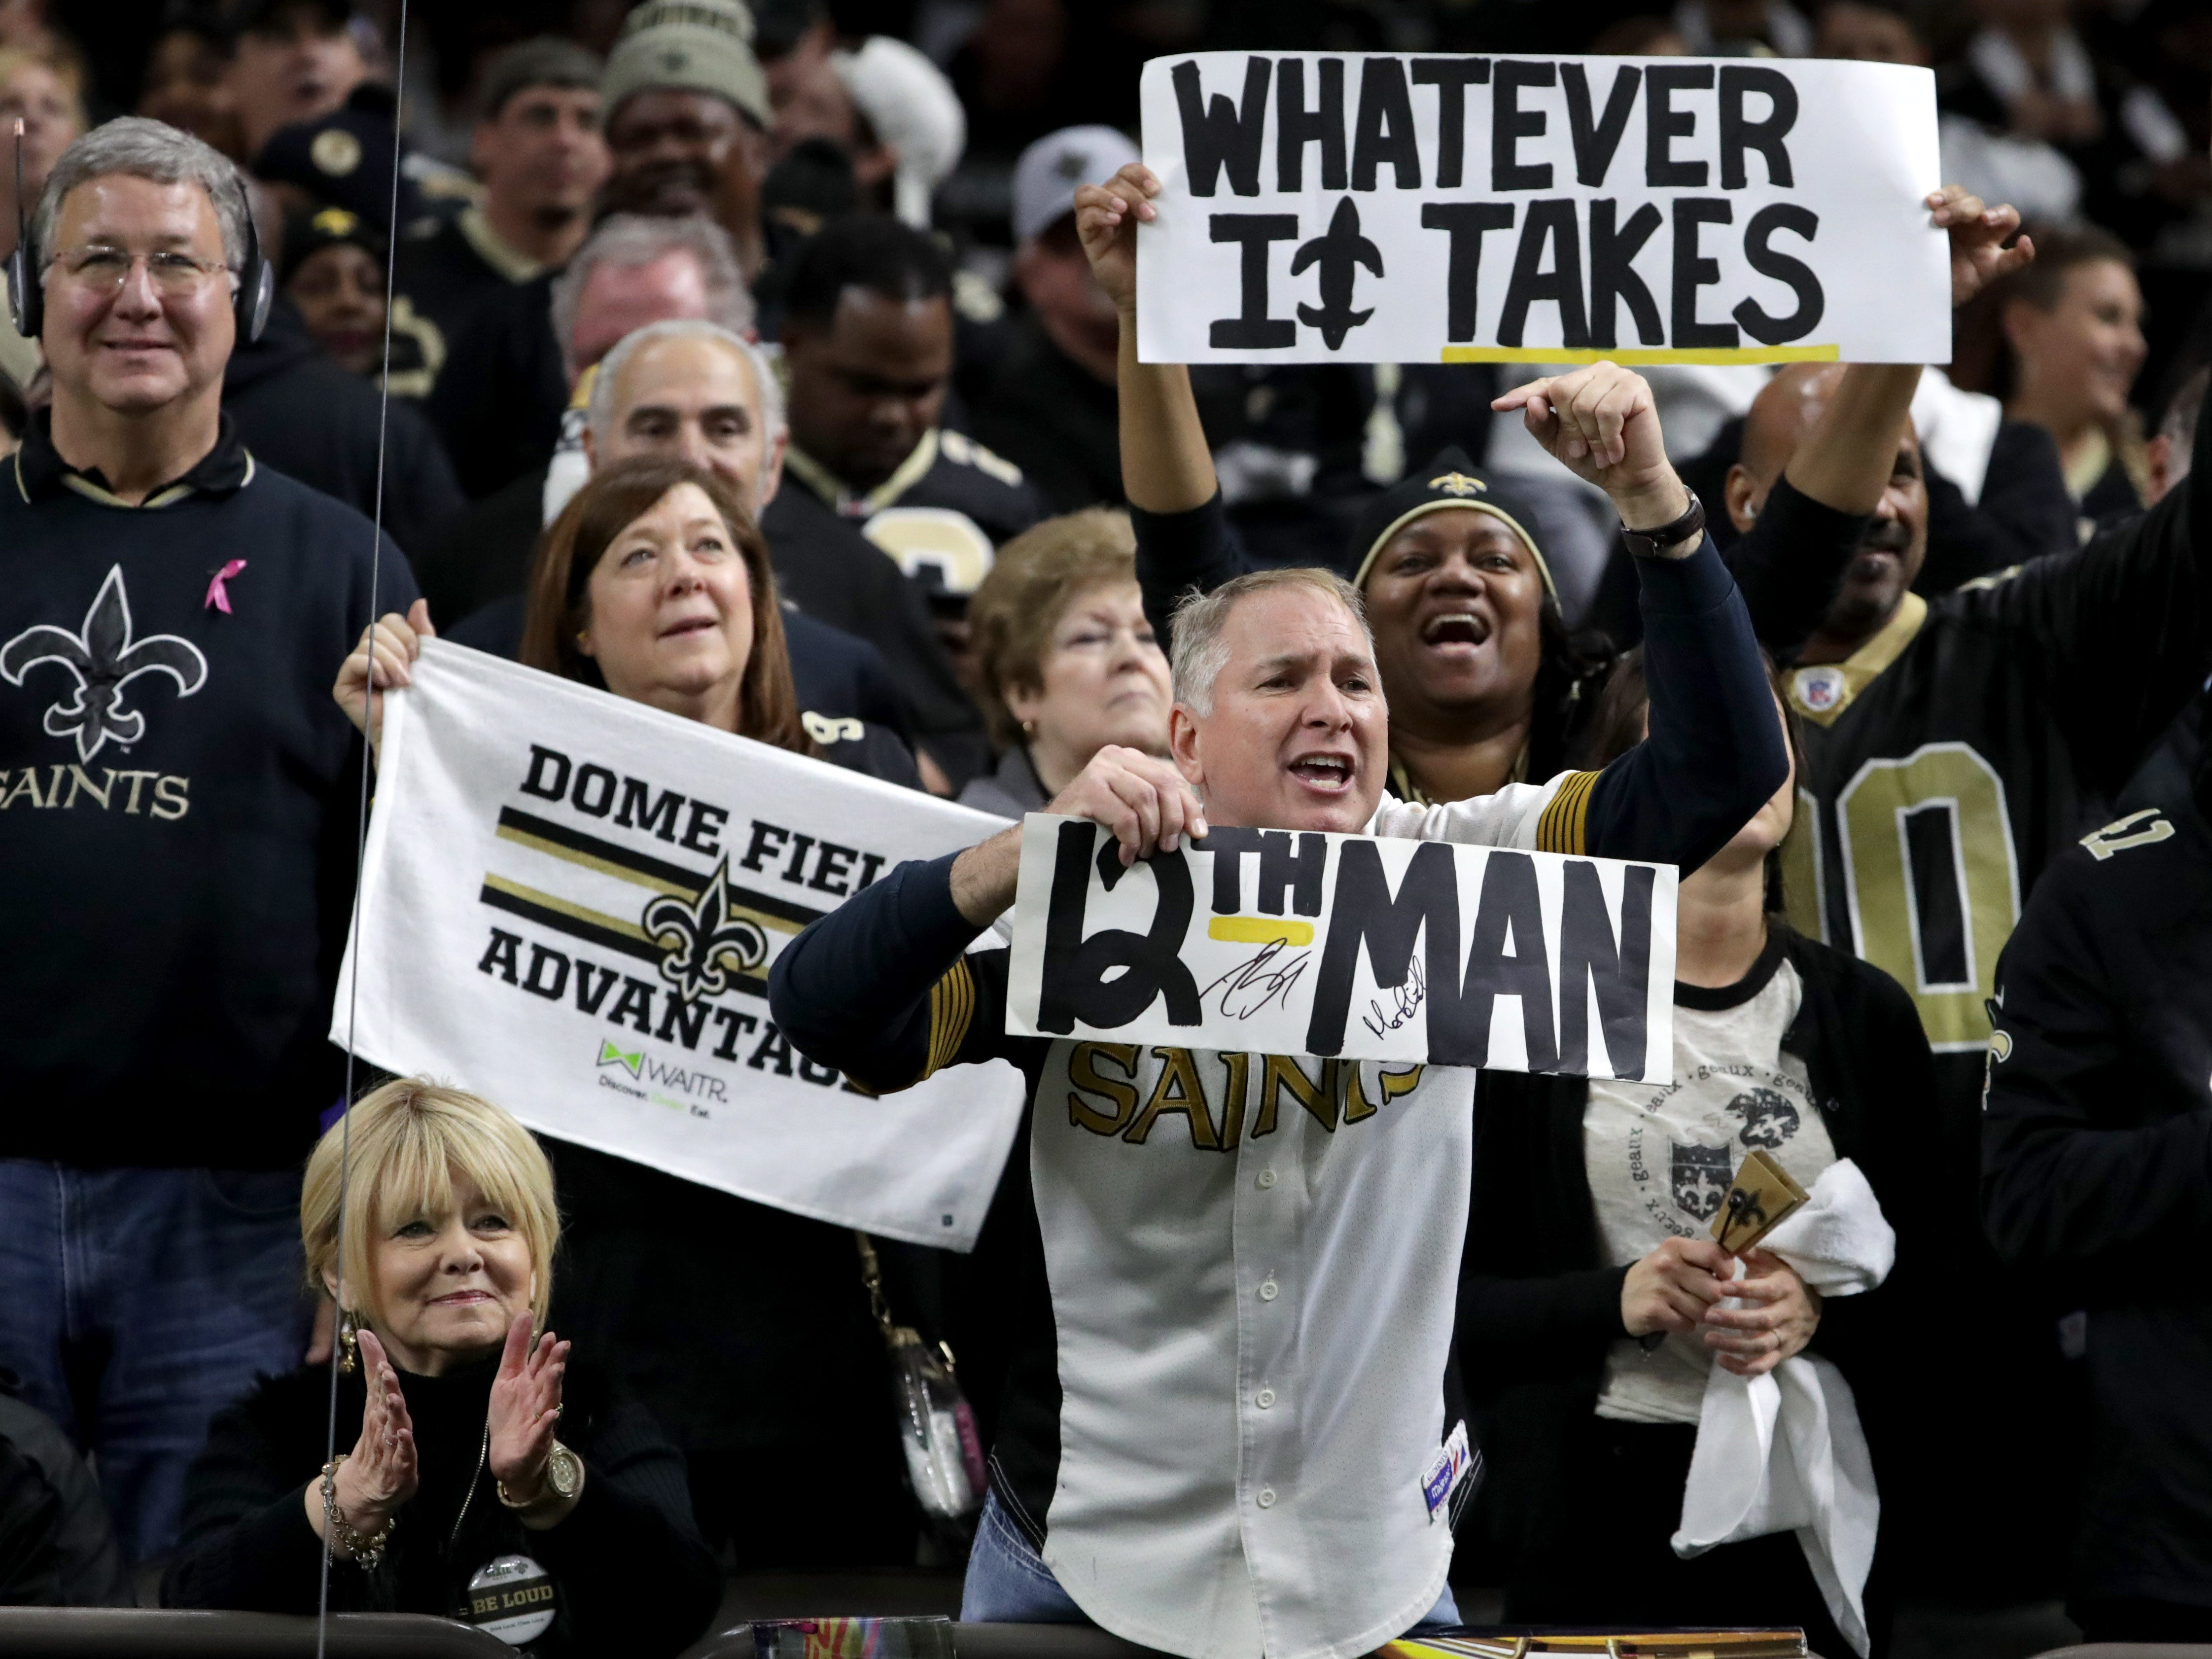 Angry New Orleans Saints fans become anti-Super Bowl partiers